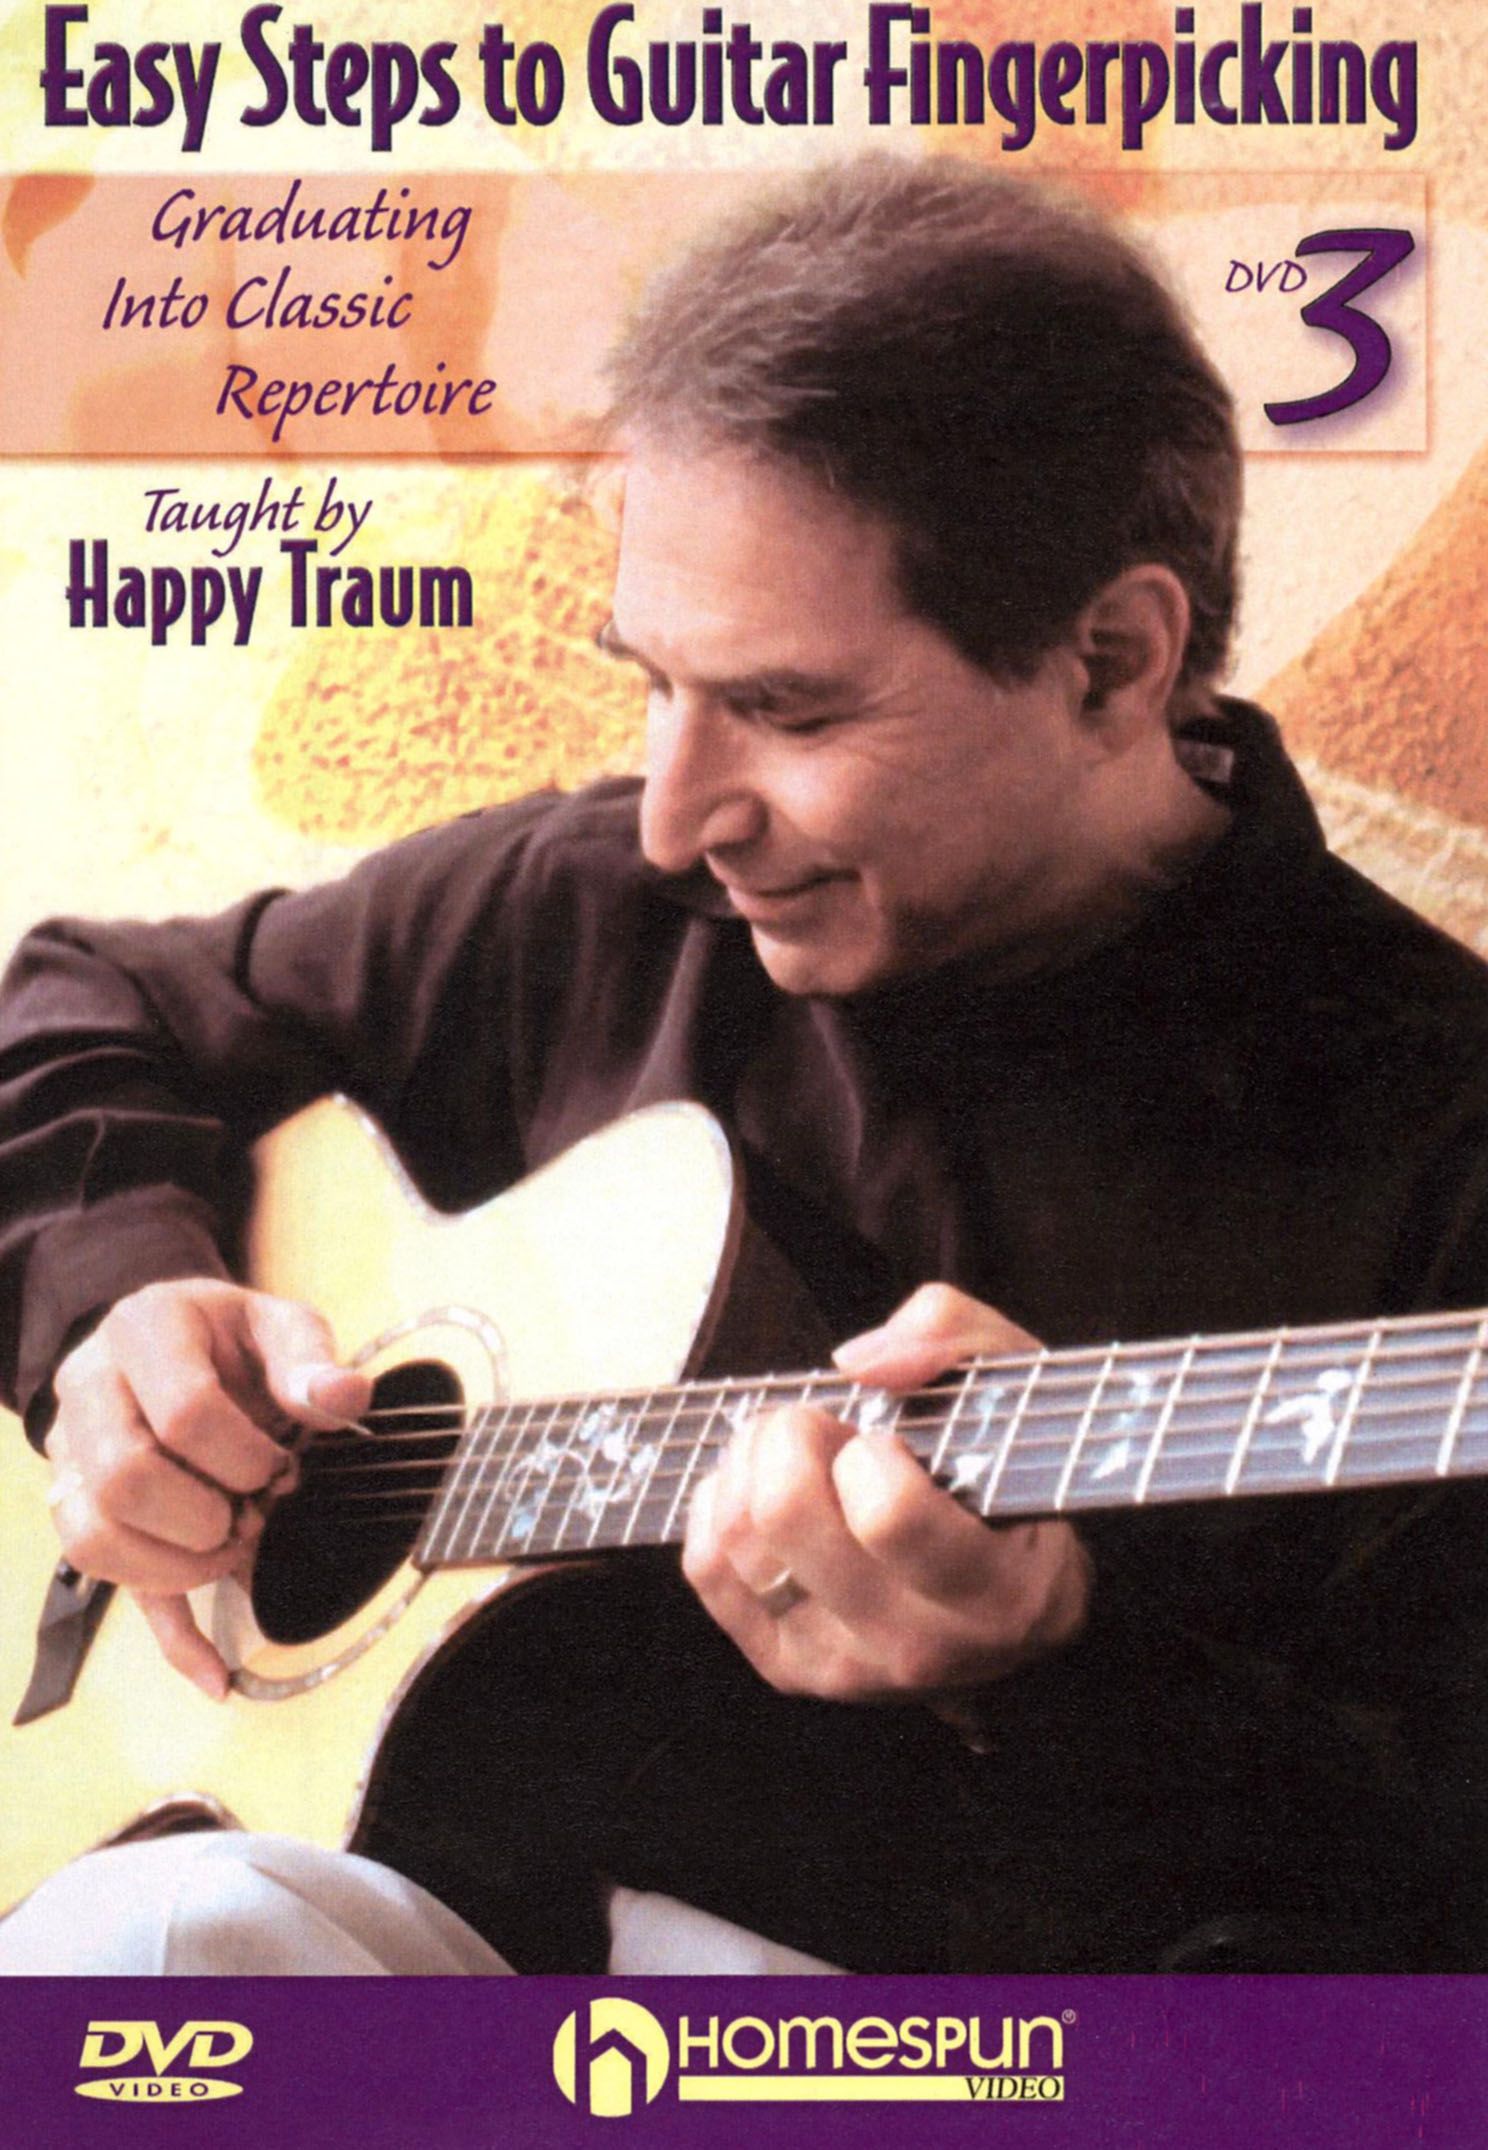 Happy Traum: Easy Steps to Guitar Fingerpicking, Vol. 3 - Graduating into Classic Repertoire